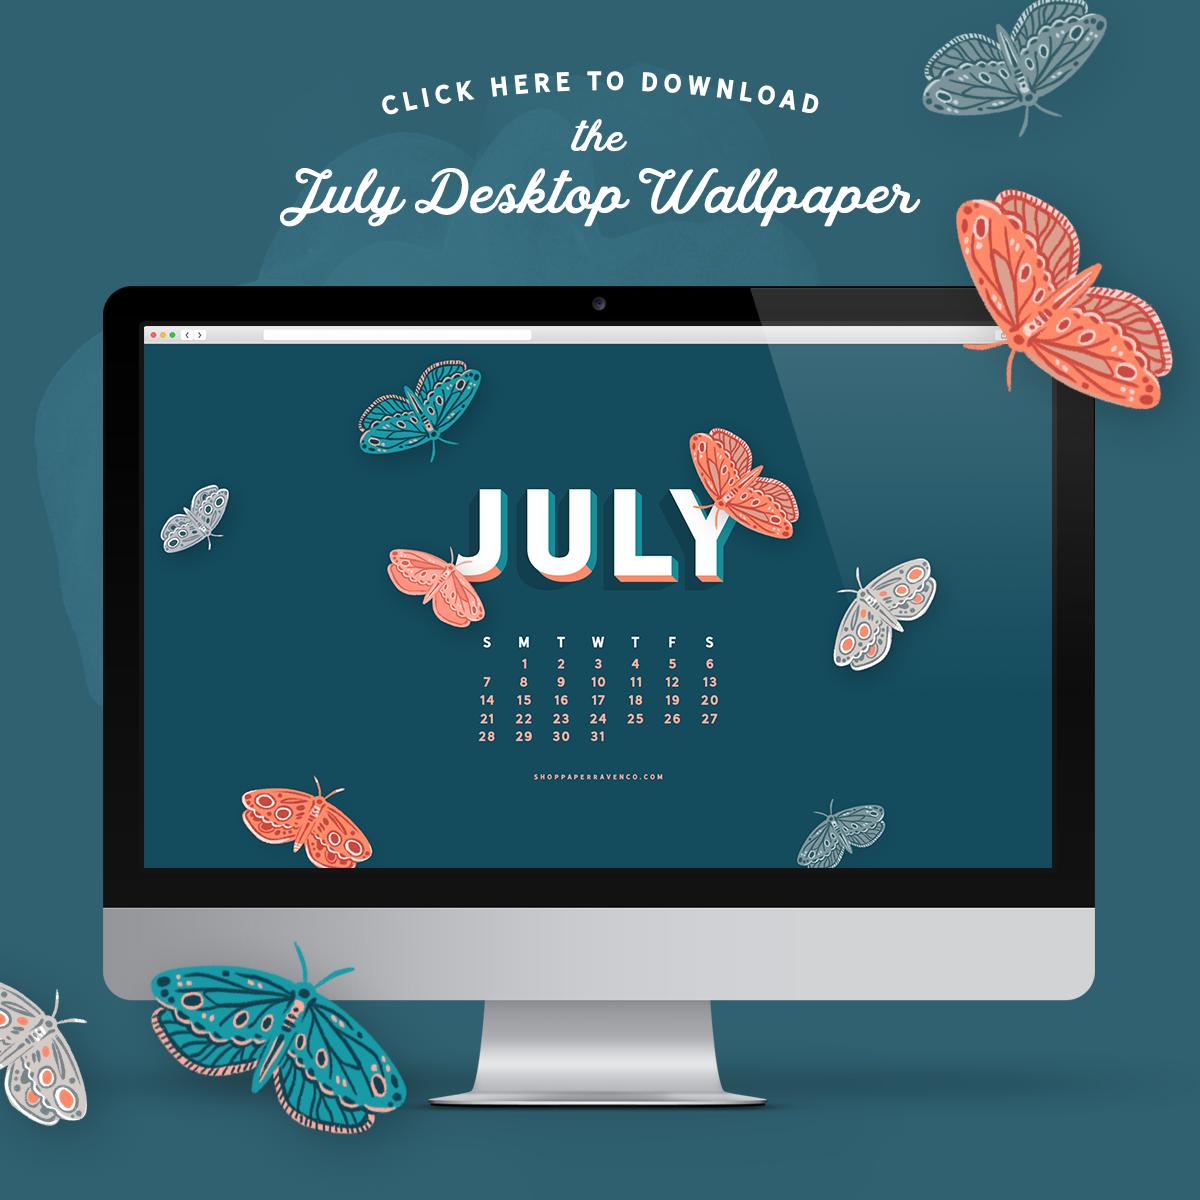 July 2019 Illustrated Desktop Wallpaper by Paper Raven Co. | www.ShopPaperRavenCo.com #dressyourtech #desktopwallpaper